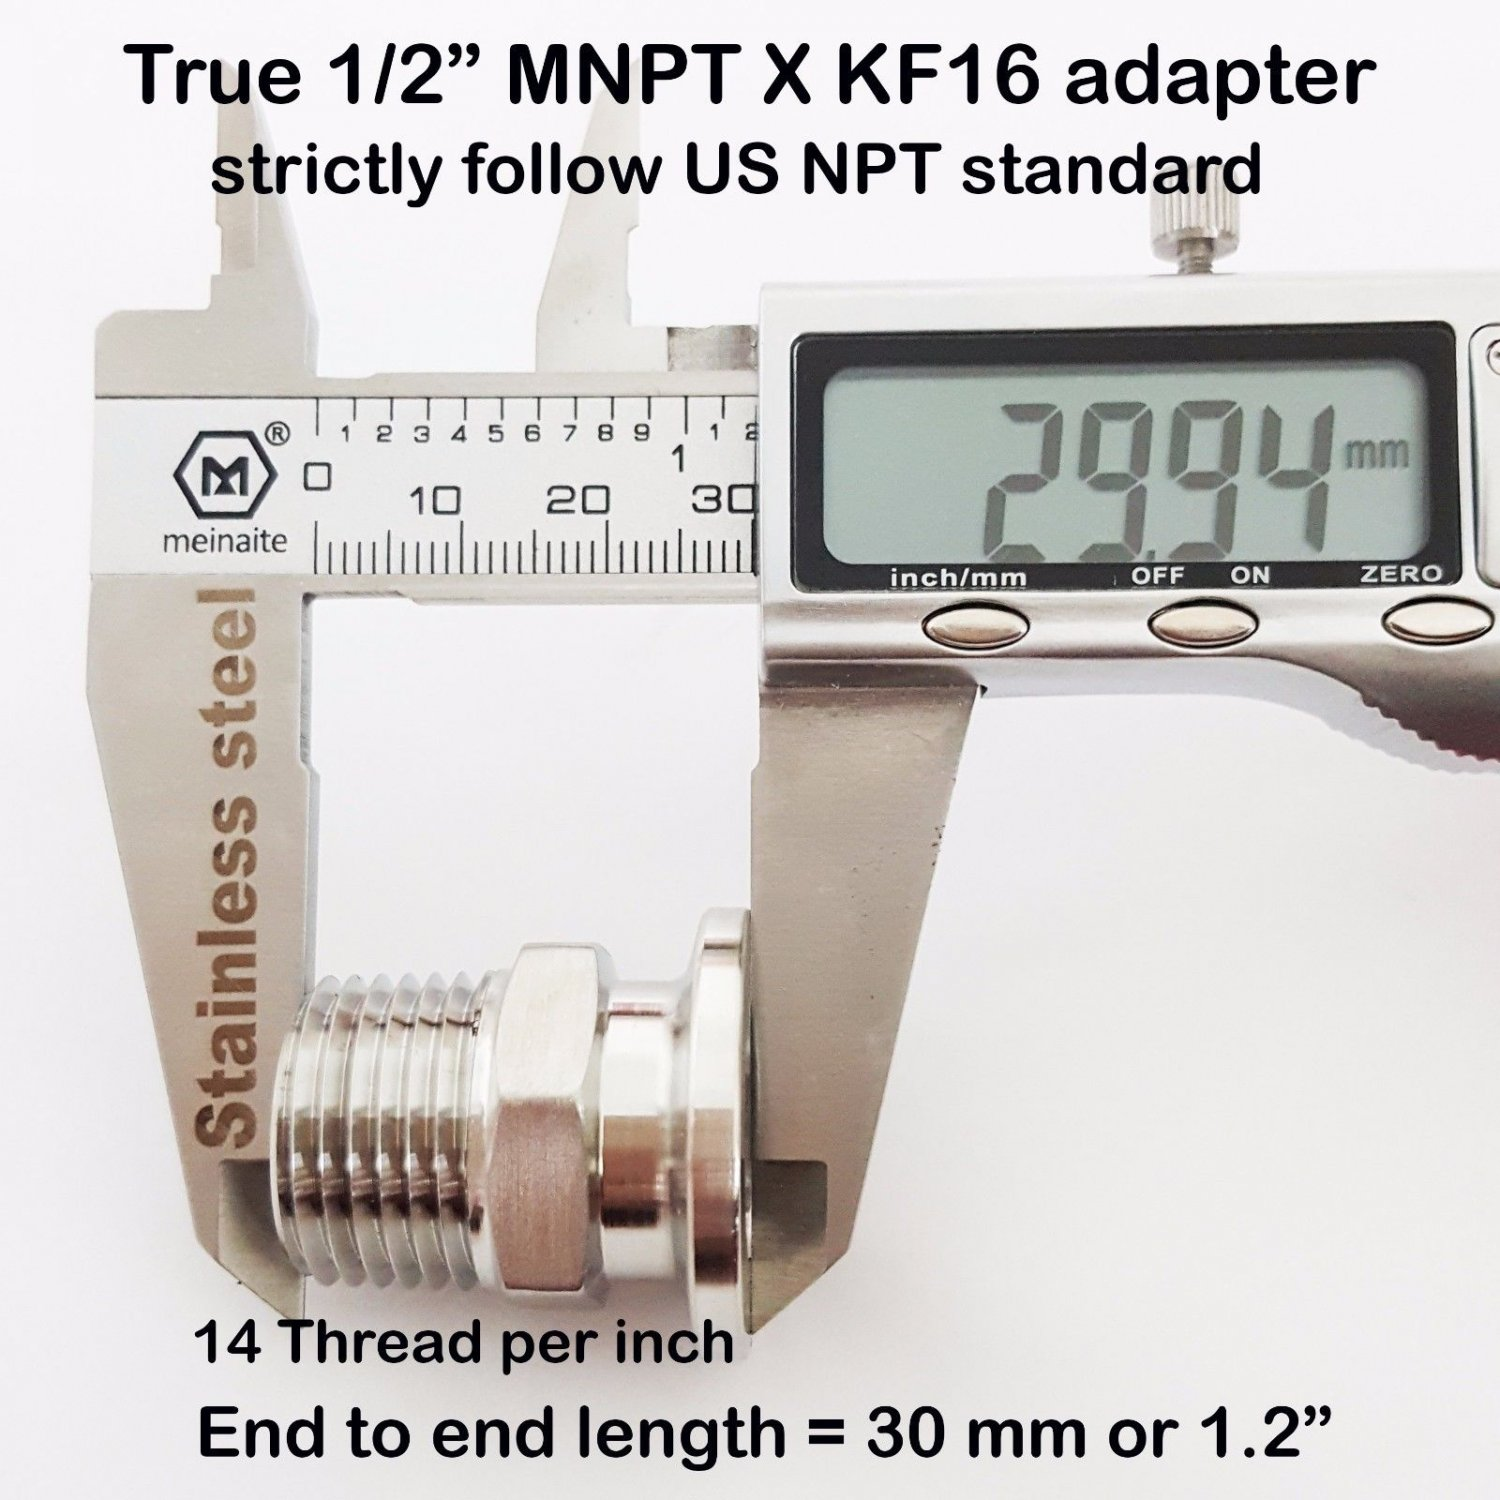 "True 1/2"" Male NPT X KF16 flange stainless steel vacuum adapter MNPT"